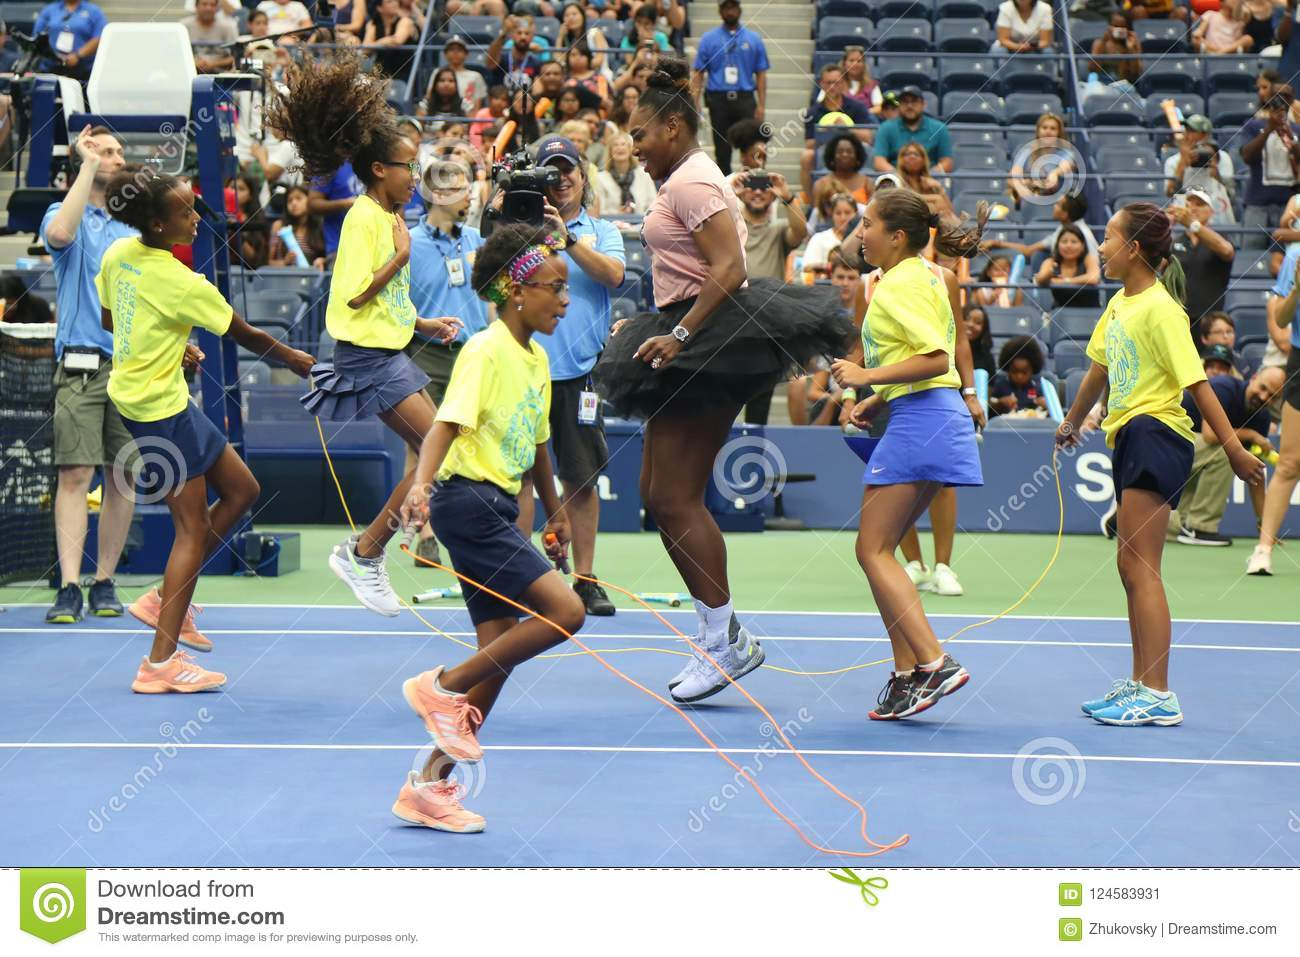 Le champion Serena Williams du Grand Chelem 23-time participe à l US Open d Arthur Ashe Kids Day avant 2018